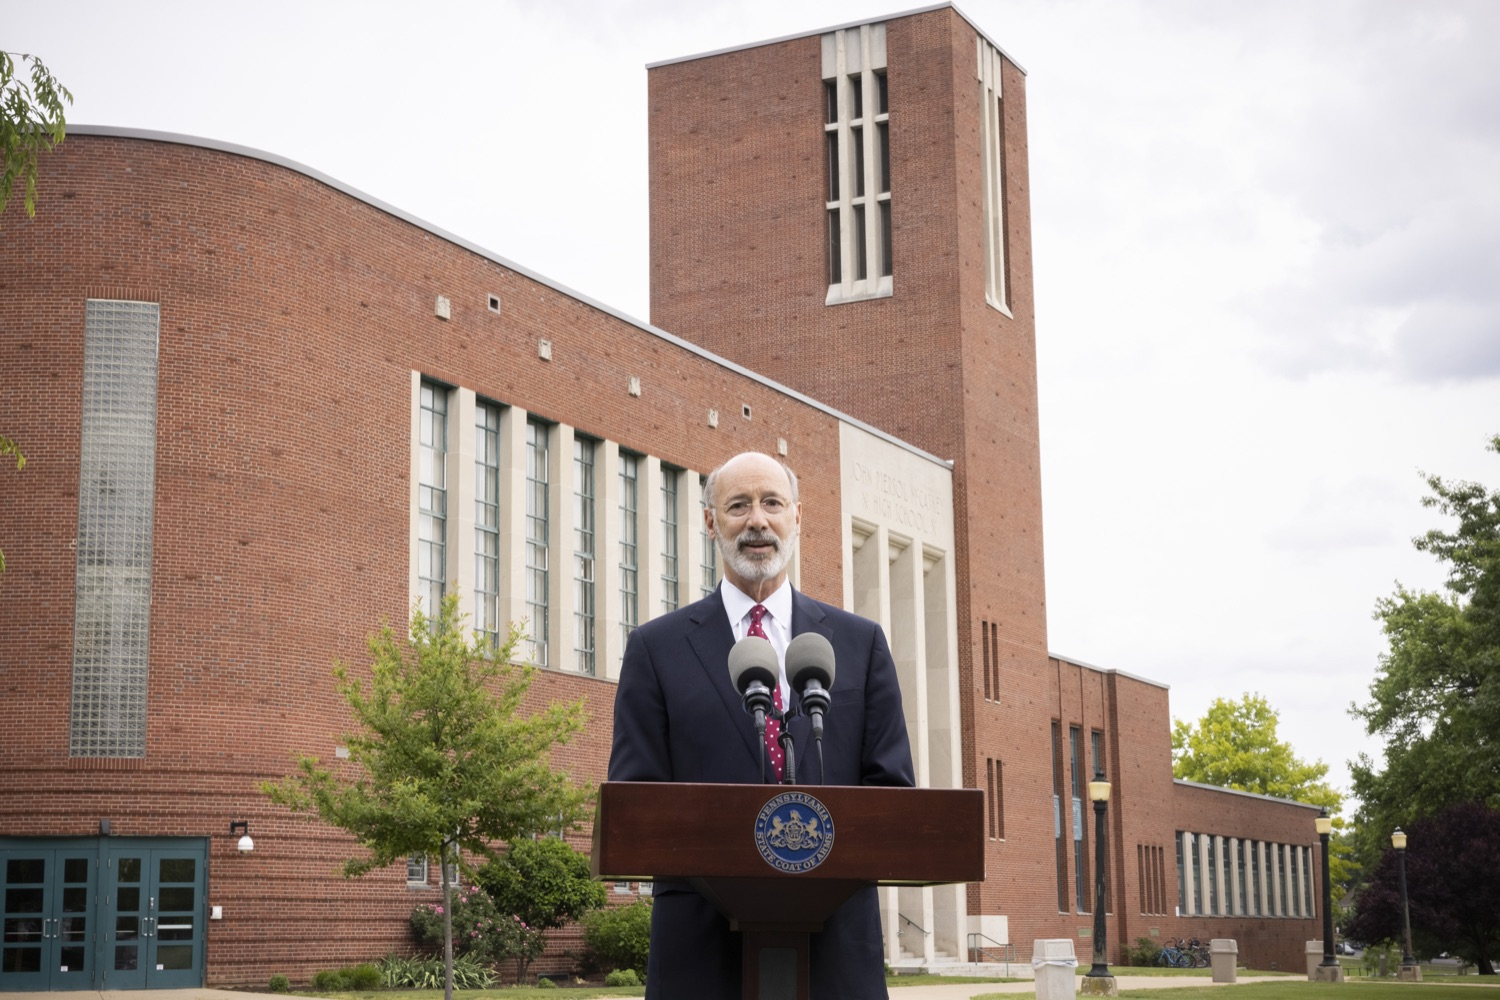 """<a href=""""https://filesource.wostreaming.net/commonwealthofpa/photo/18796_gov_charterSchool_dz_003.jpg"""" target=""""_blank"""">⇣Download Photo<br></a>Pennsylvania Governor Tom Wolf speaking with the press.  With overwhelming support among school districts for his charter school accountability plan, Governor Tom Wolf visited J.P. McCaskey High School in Lancaster today to discuss his bipartisan proposal that saves an estimated $395 million a year. Lancaster, PA  June 01, 2021"""